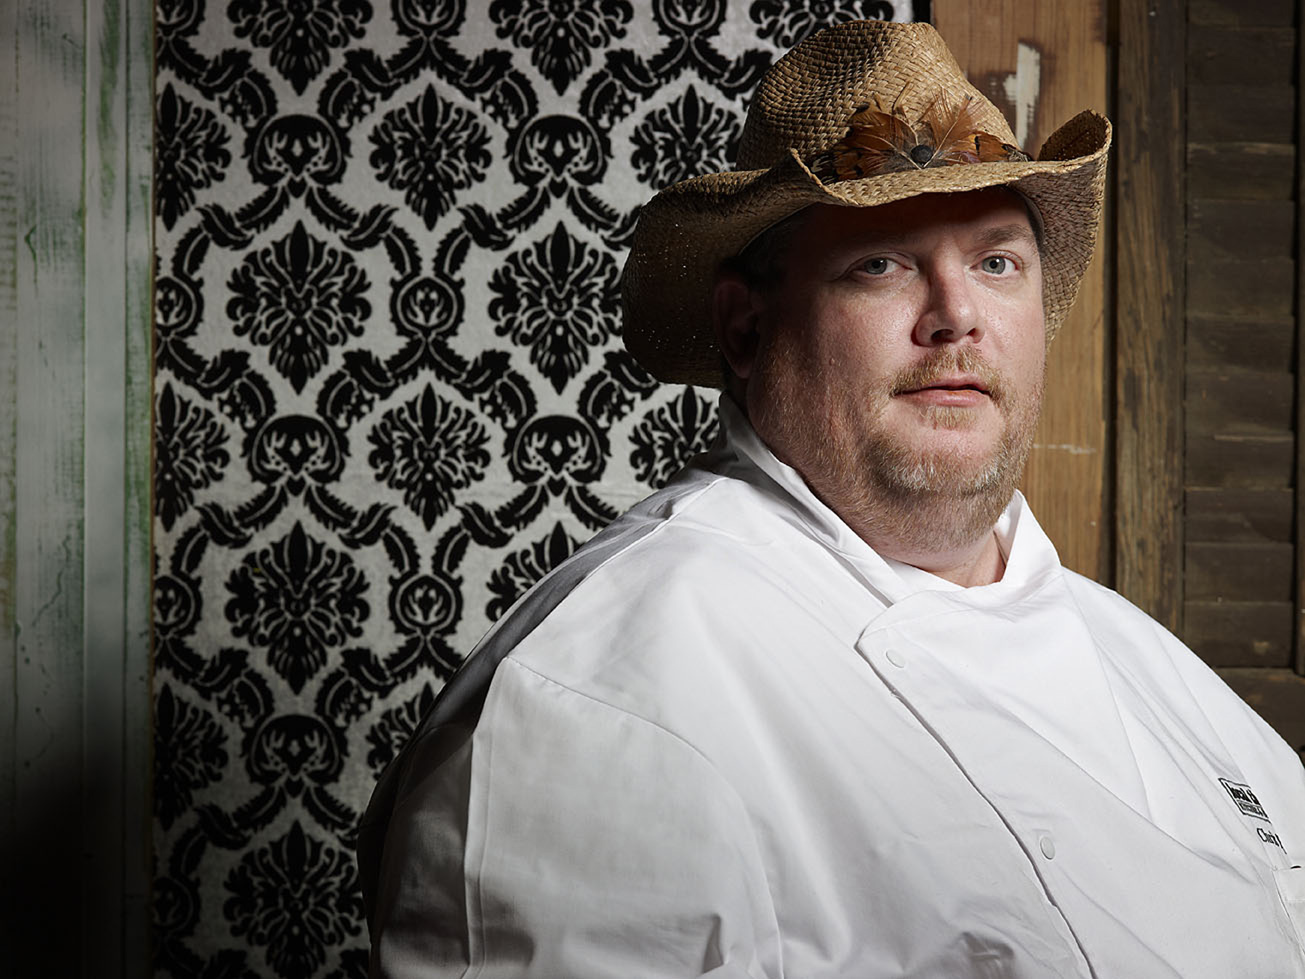 Chef Chris Hall of Atlanta's Local Three Kitchen & Bar chats with City's Best.